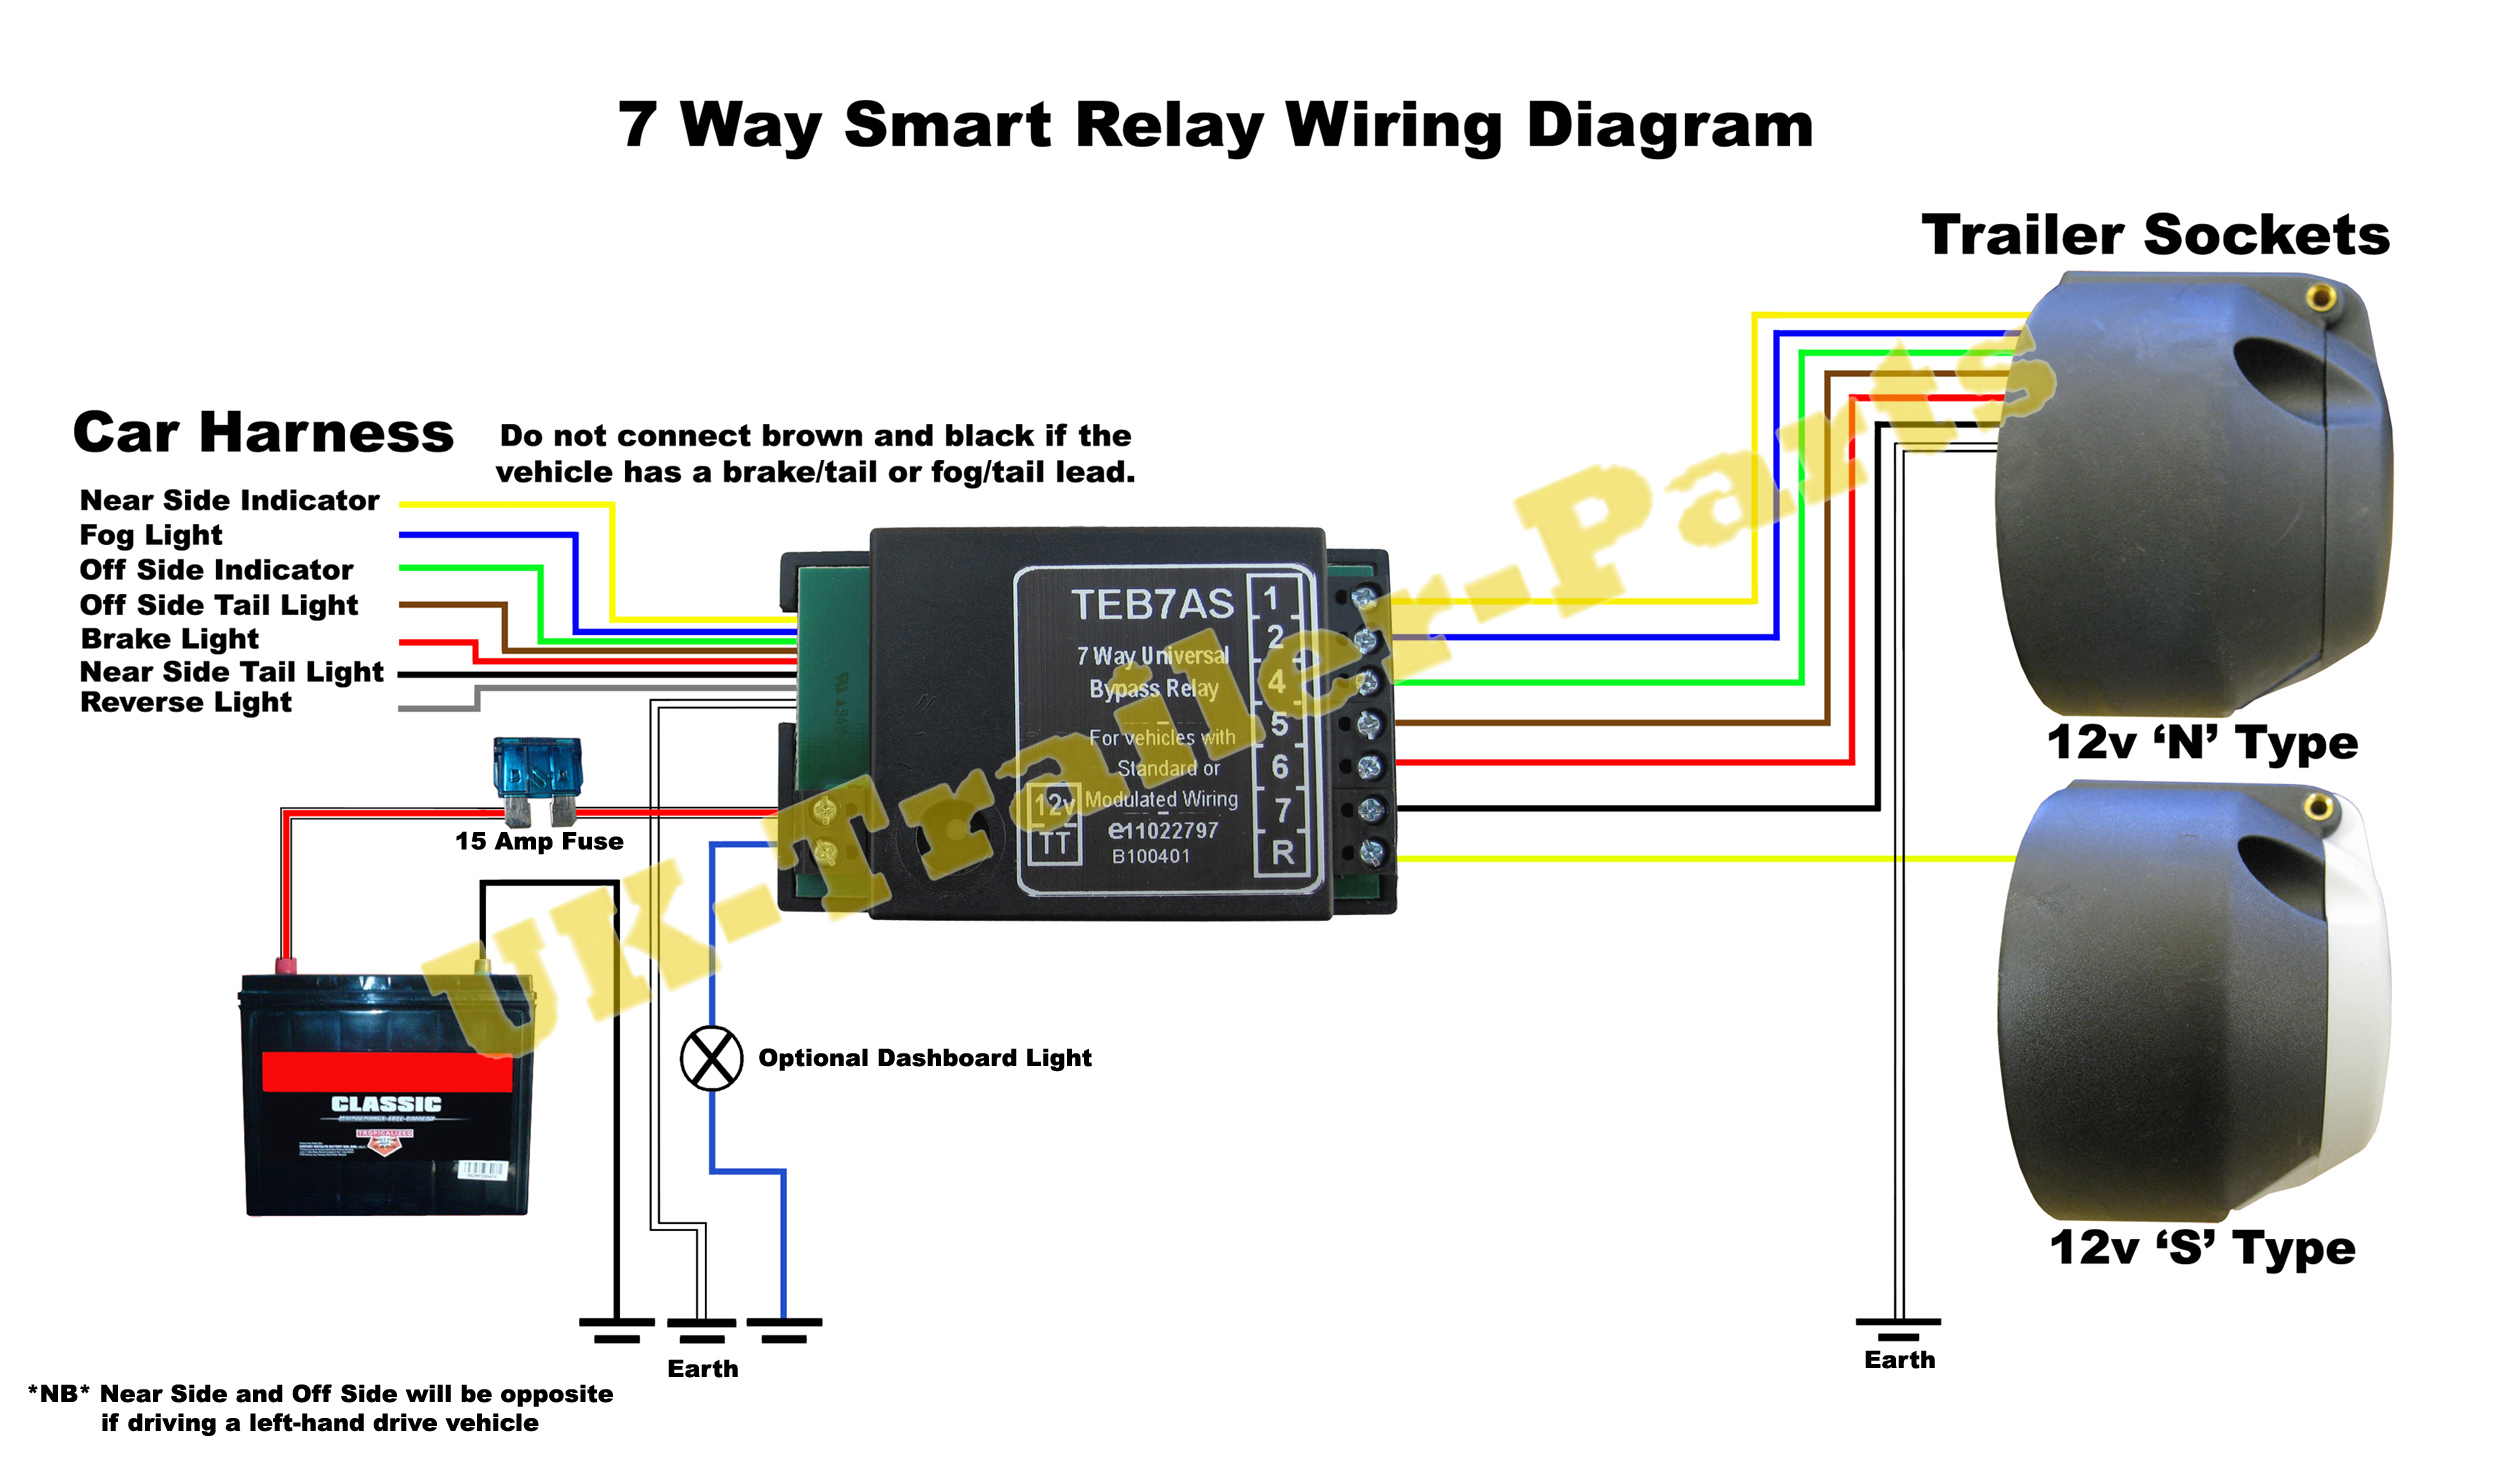 smart relay wiring diagram2 brake light wiring diagram how brake light wiring works audi q7 tow bar wiring diagram at gsmx.co